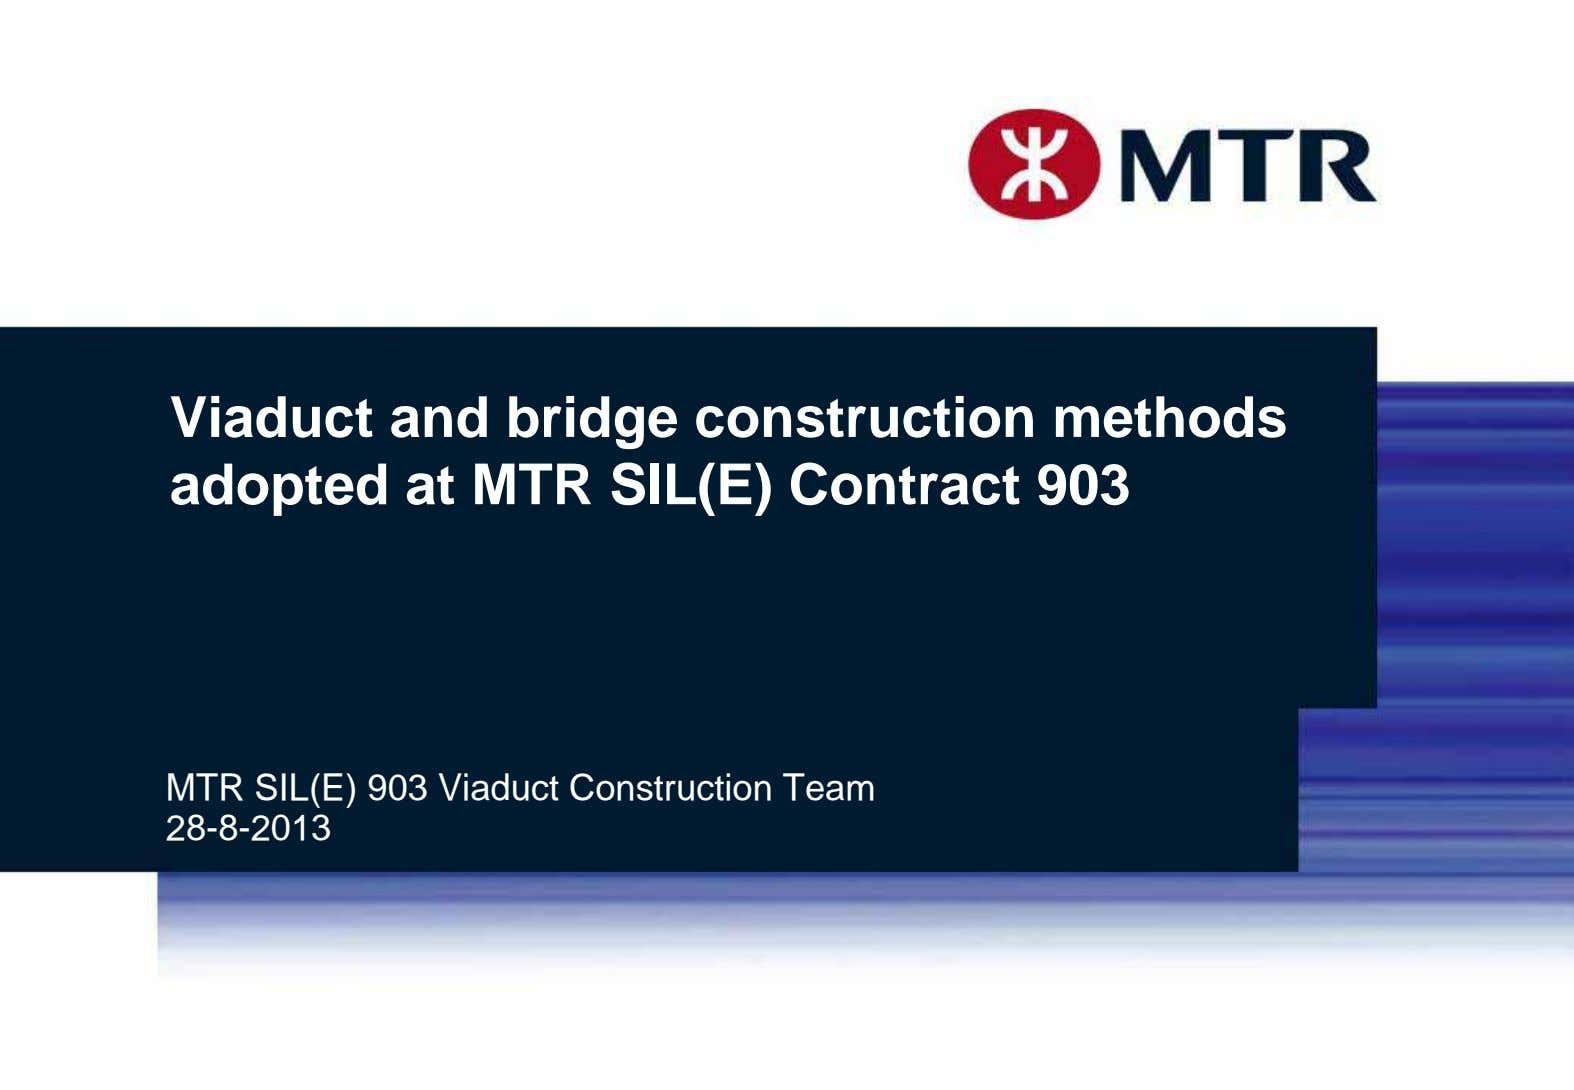 Viaduct and bridge construction methods adopted at MTR SIL(E) Contract 903 MTR SIL(E) 903 Viaduct